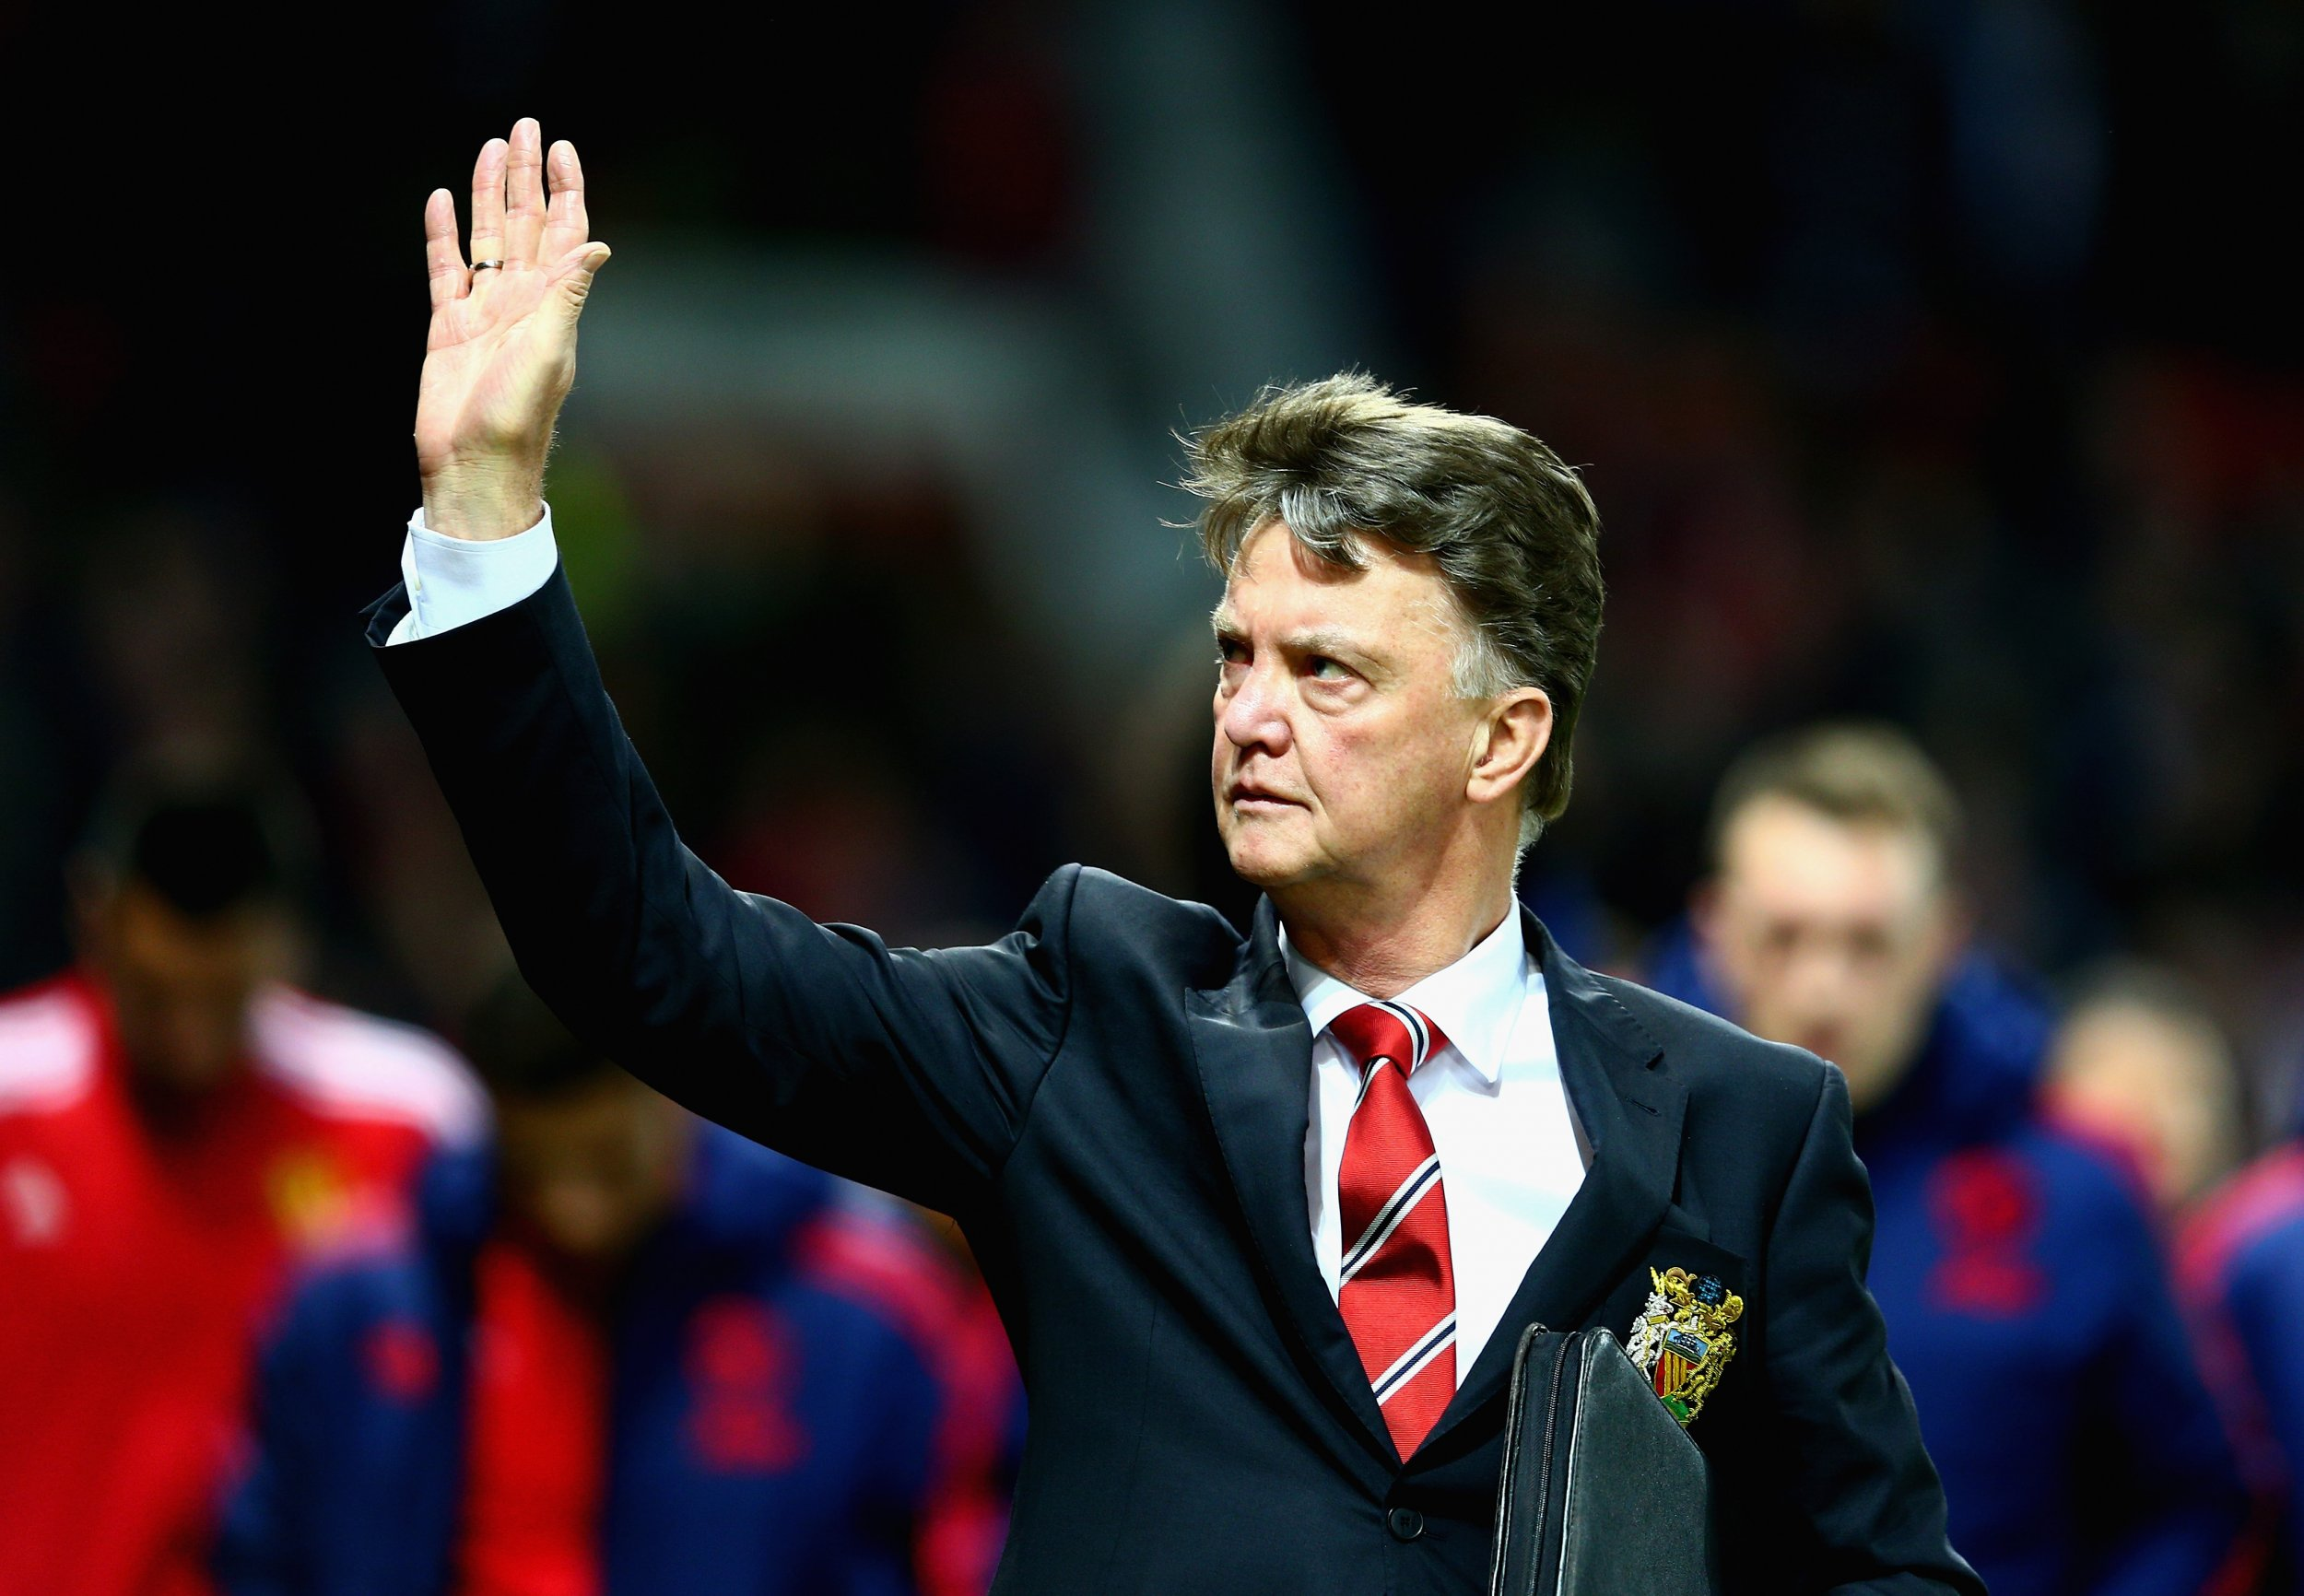 Van Gaal is angry at reports he offered Manchester United his resignation.